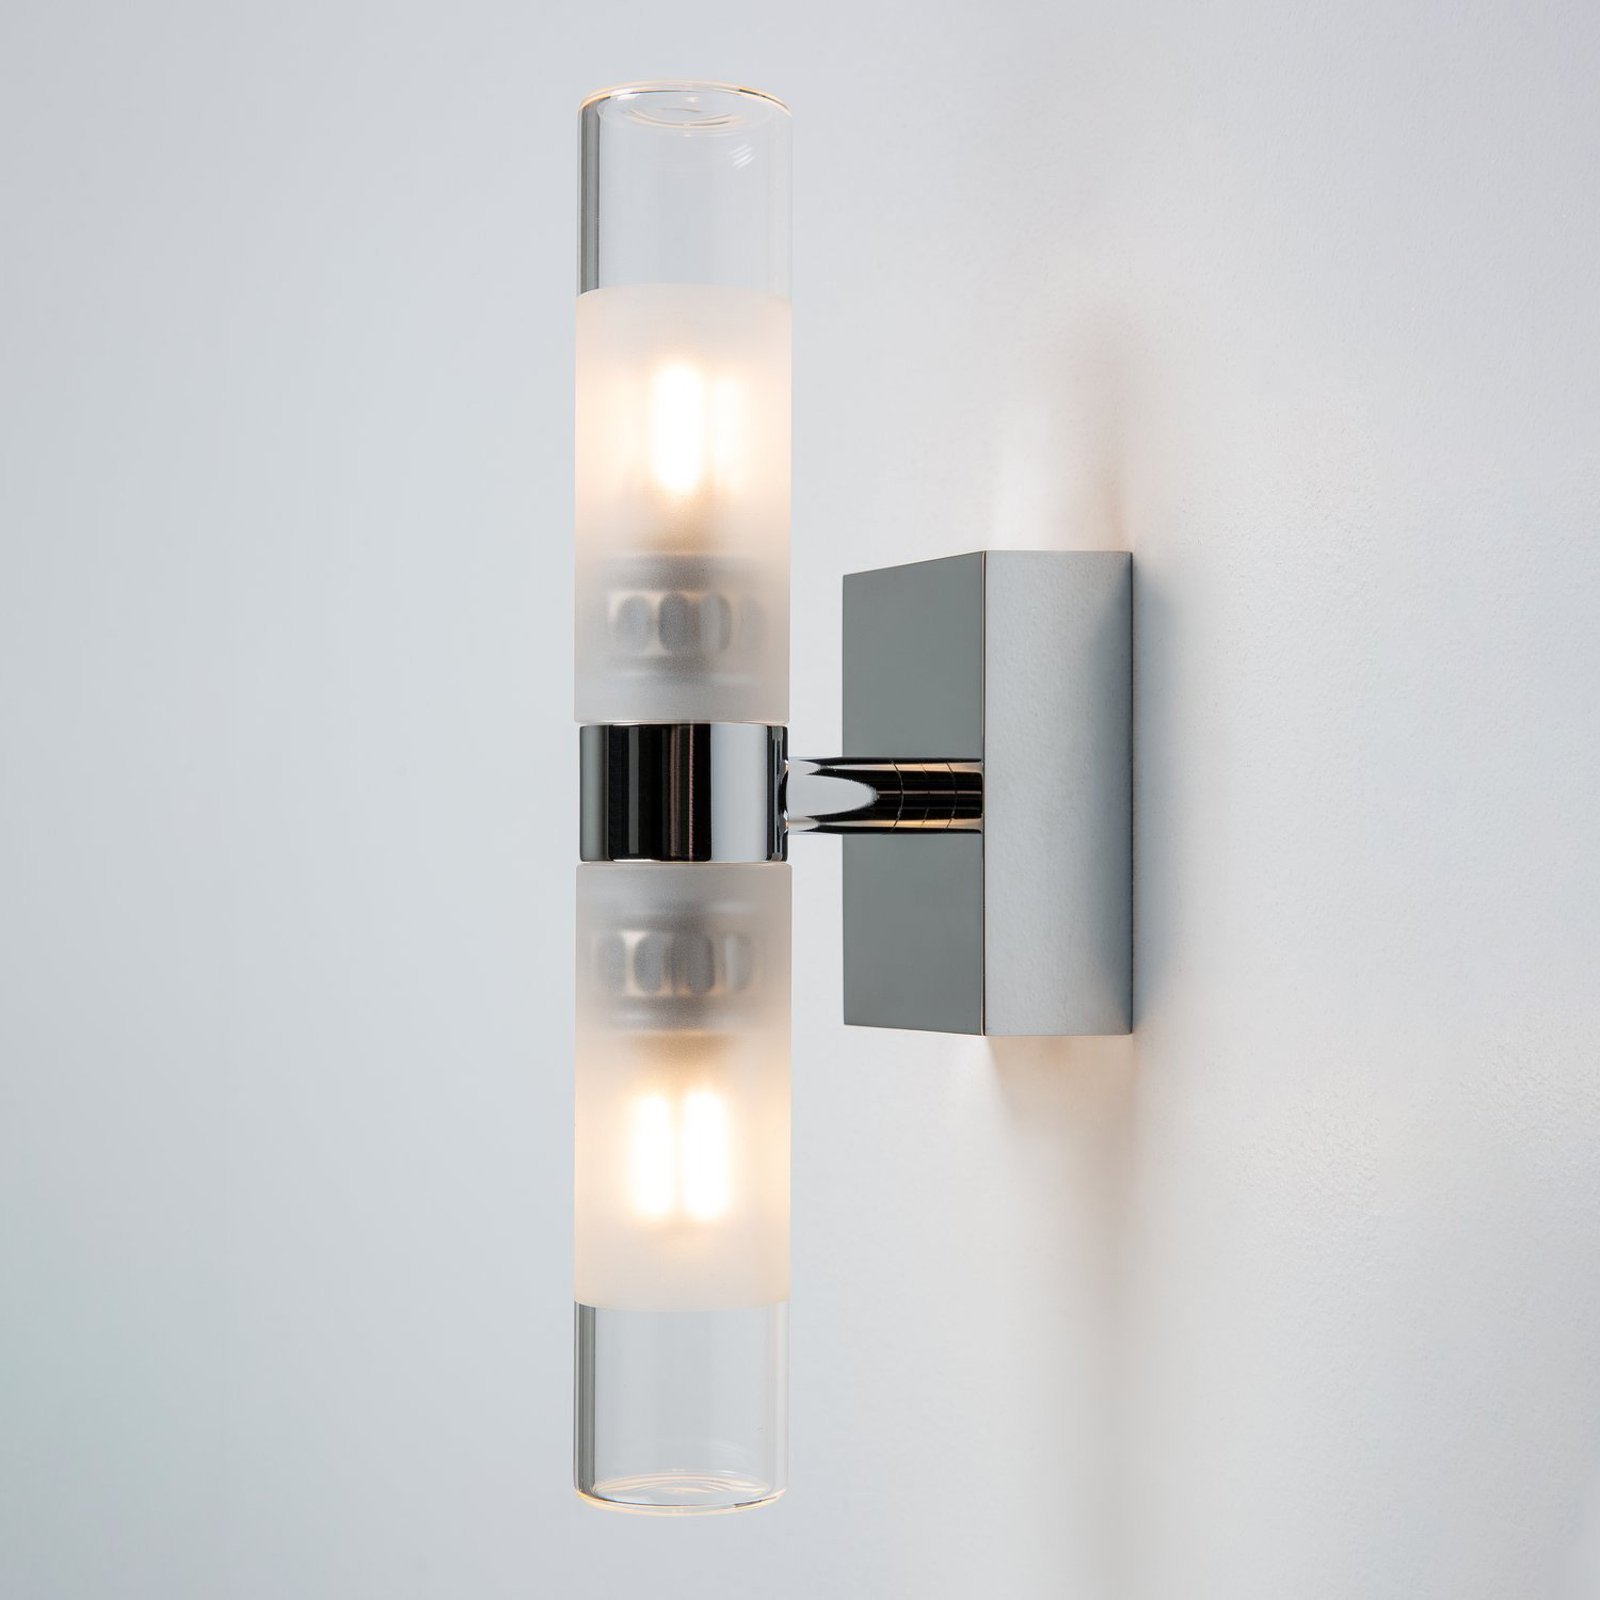 Wandlamp MIBO WALL UP-DOWN